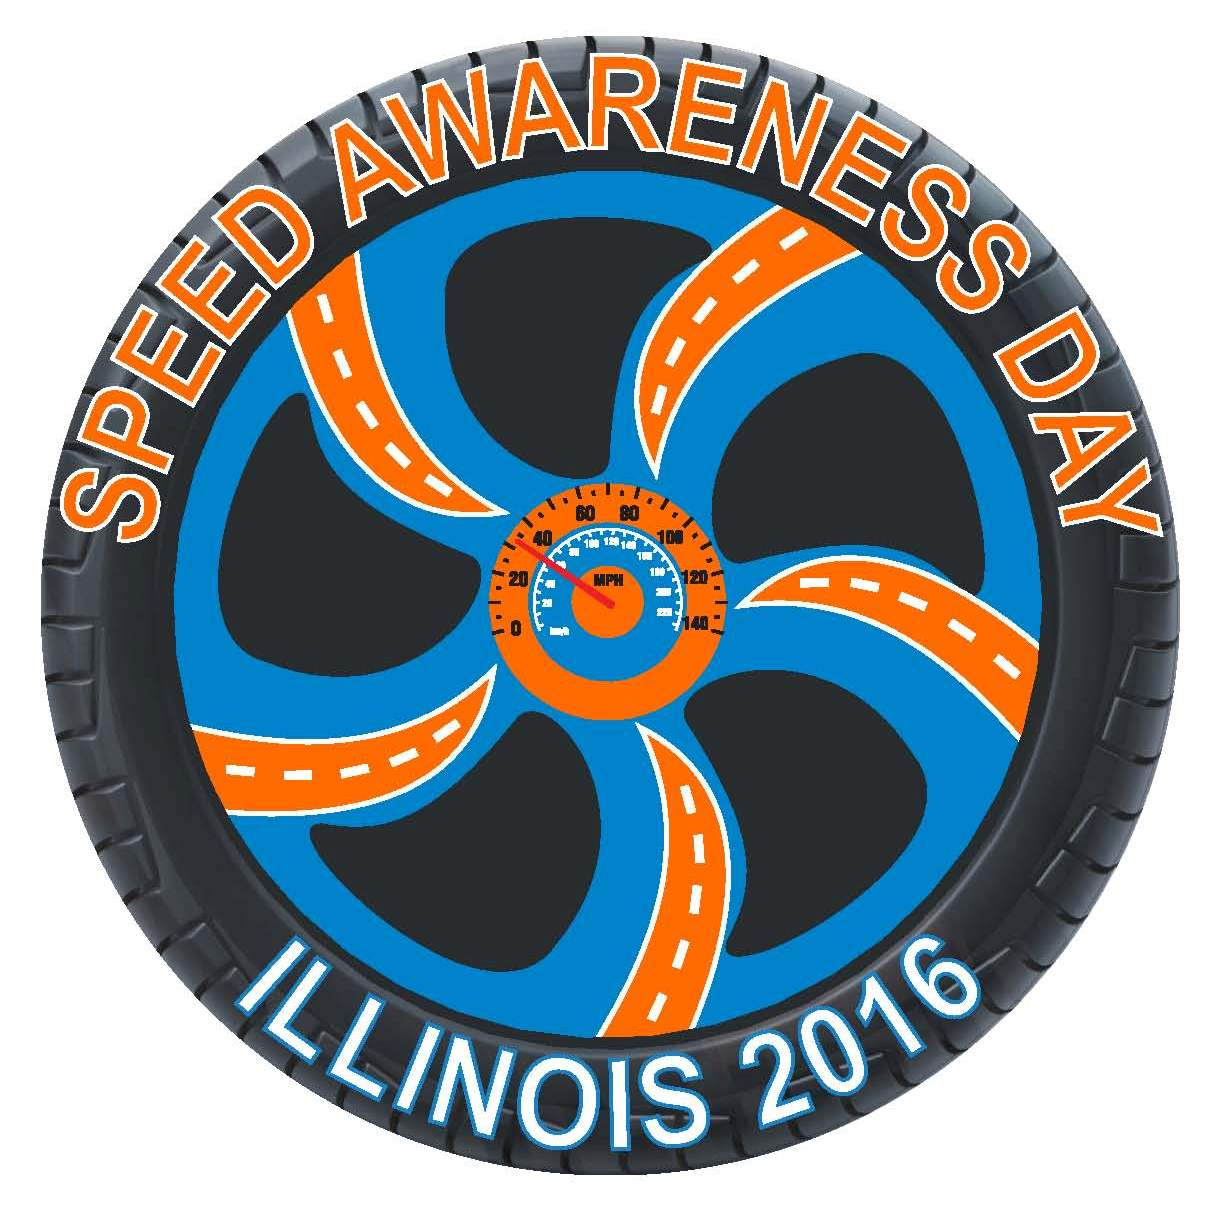 Illinois Speed Awareness Day - OPTION 1.compressed.jpg